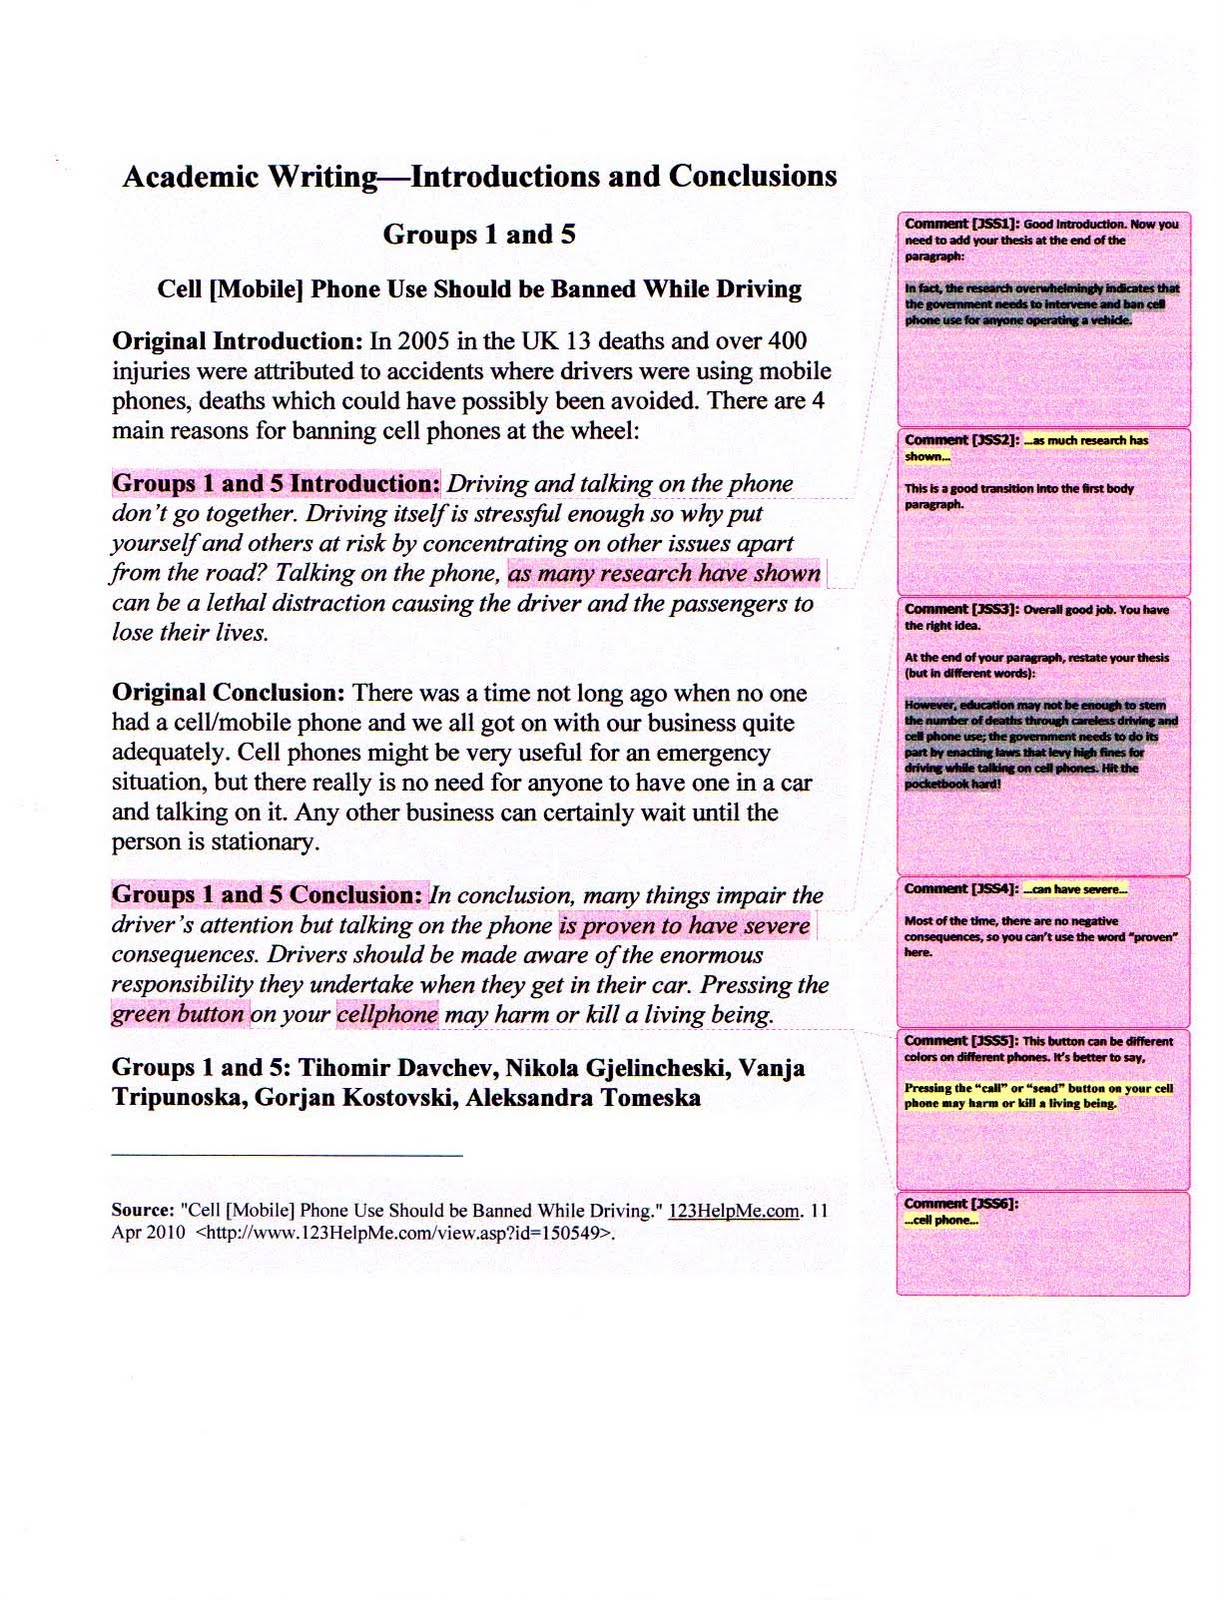 essay on group work group work essay writing group writing the